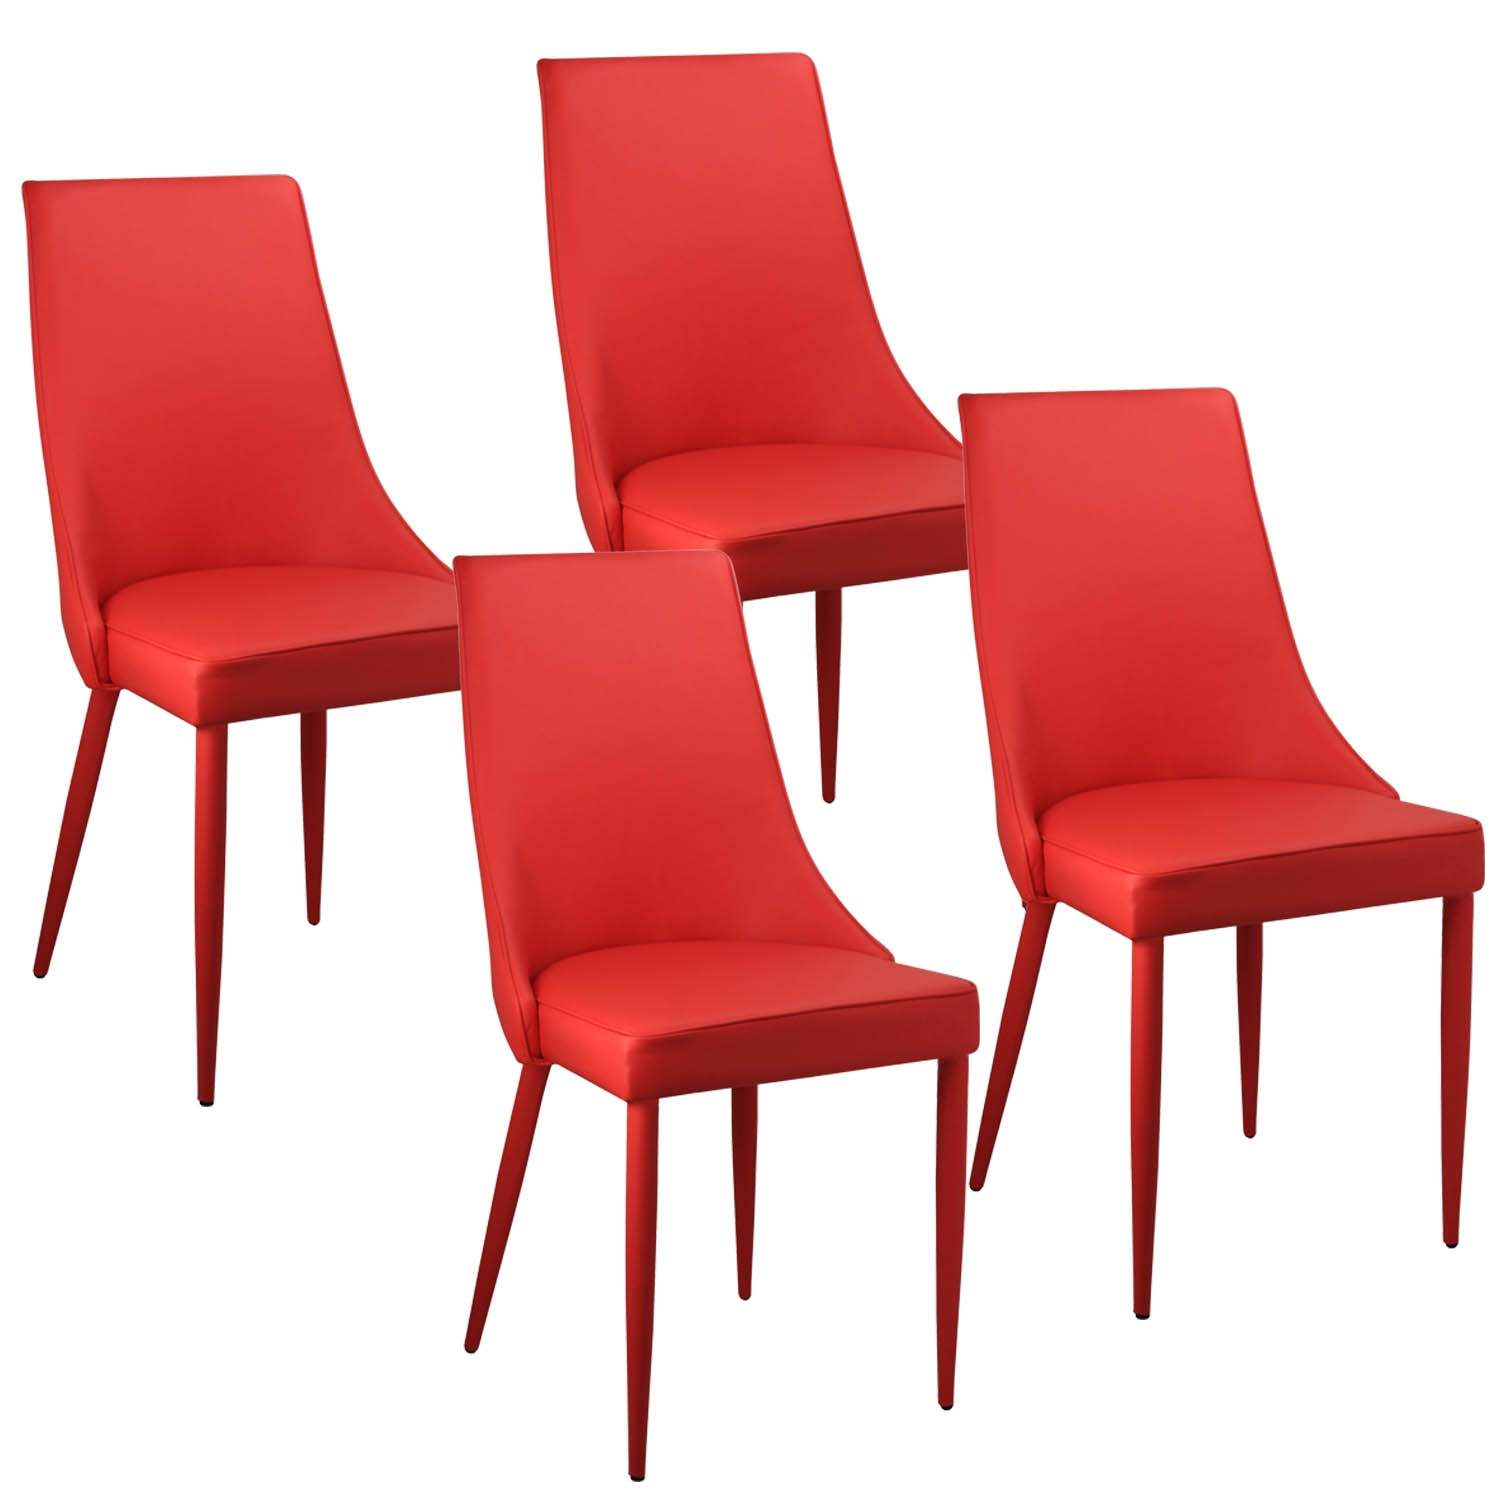 deco in paris lot de 4 chaises rouge avev avev rouge x4. Black Bedroom Furniture Sets. Home Design Ideas